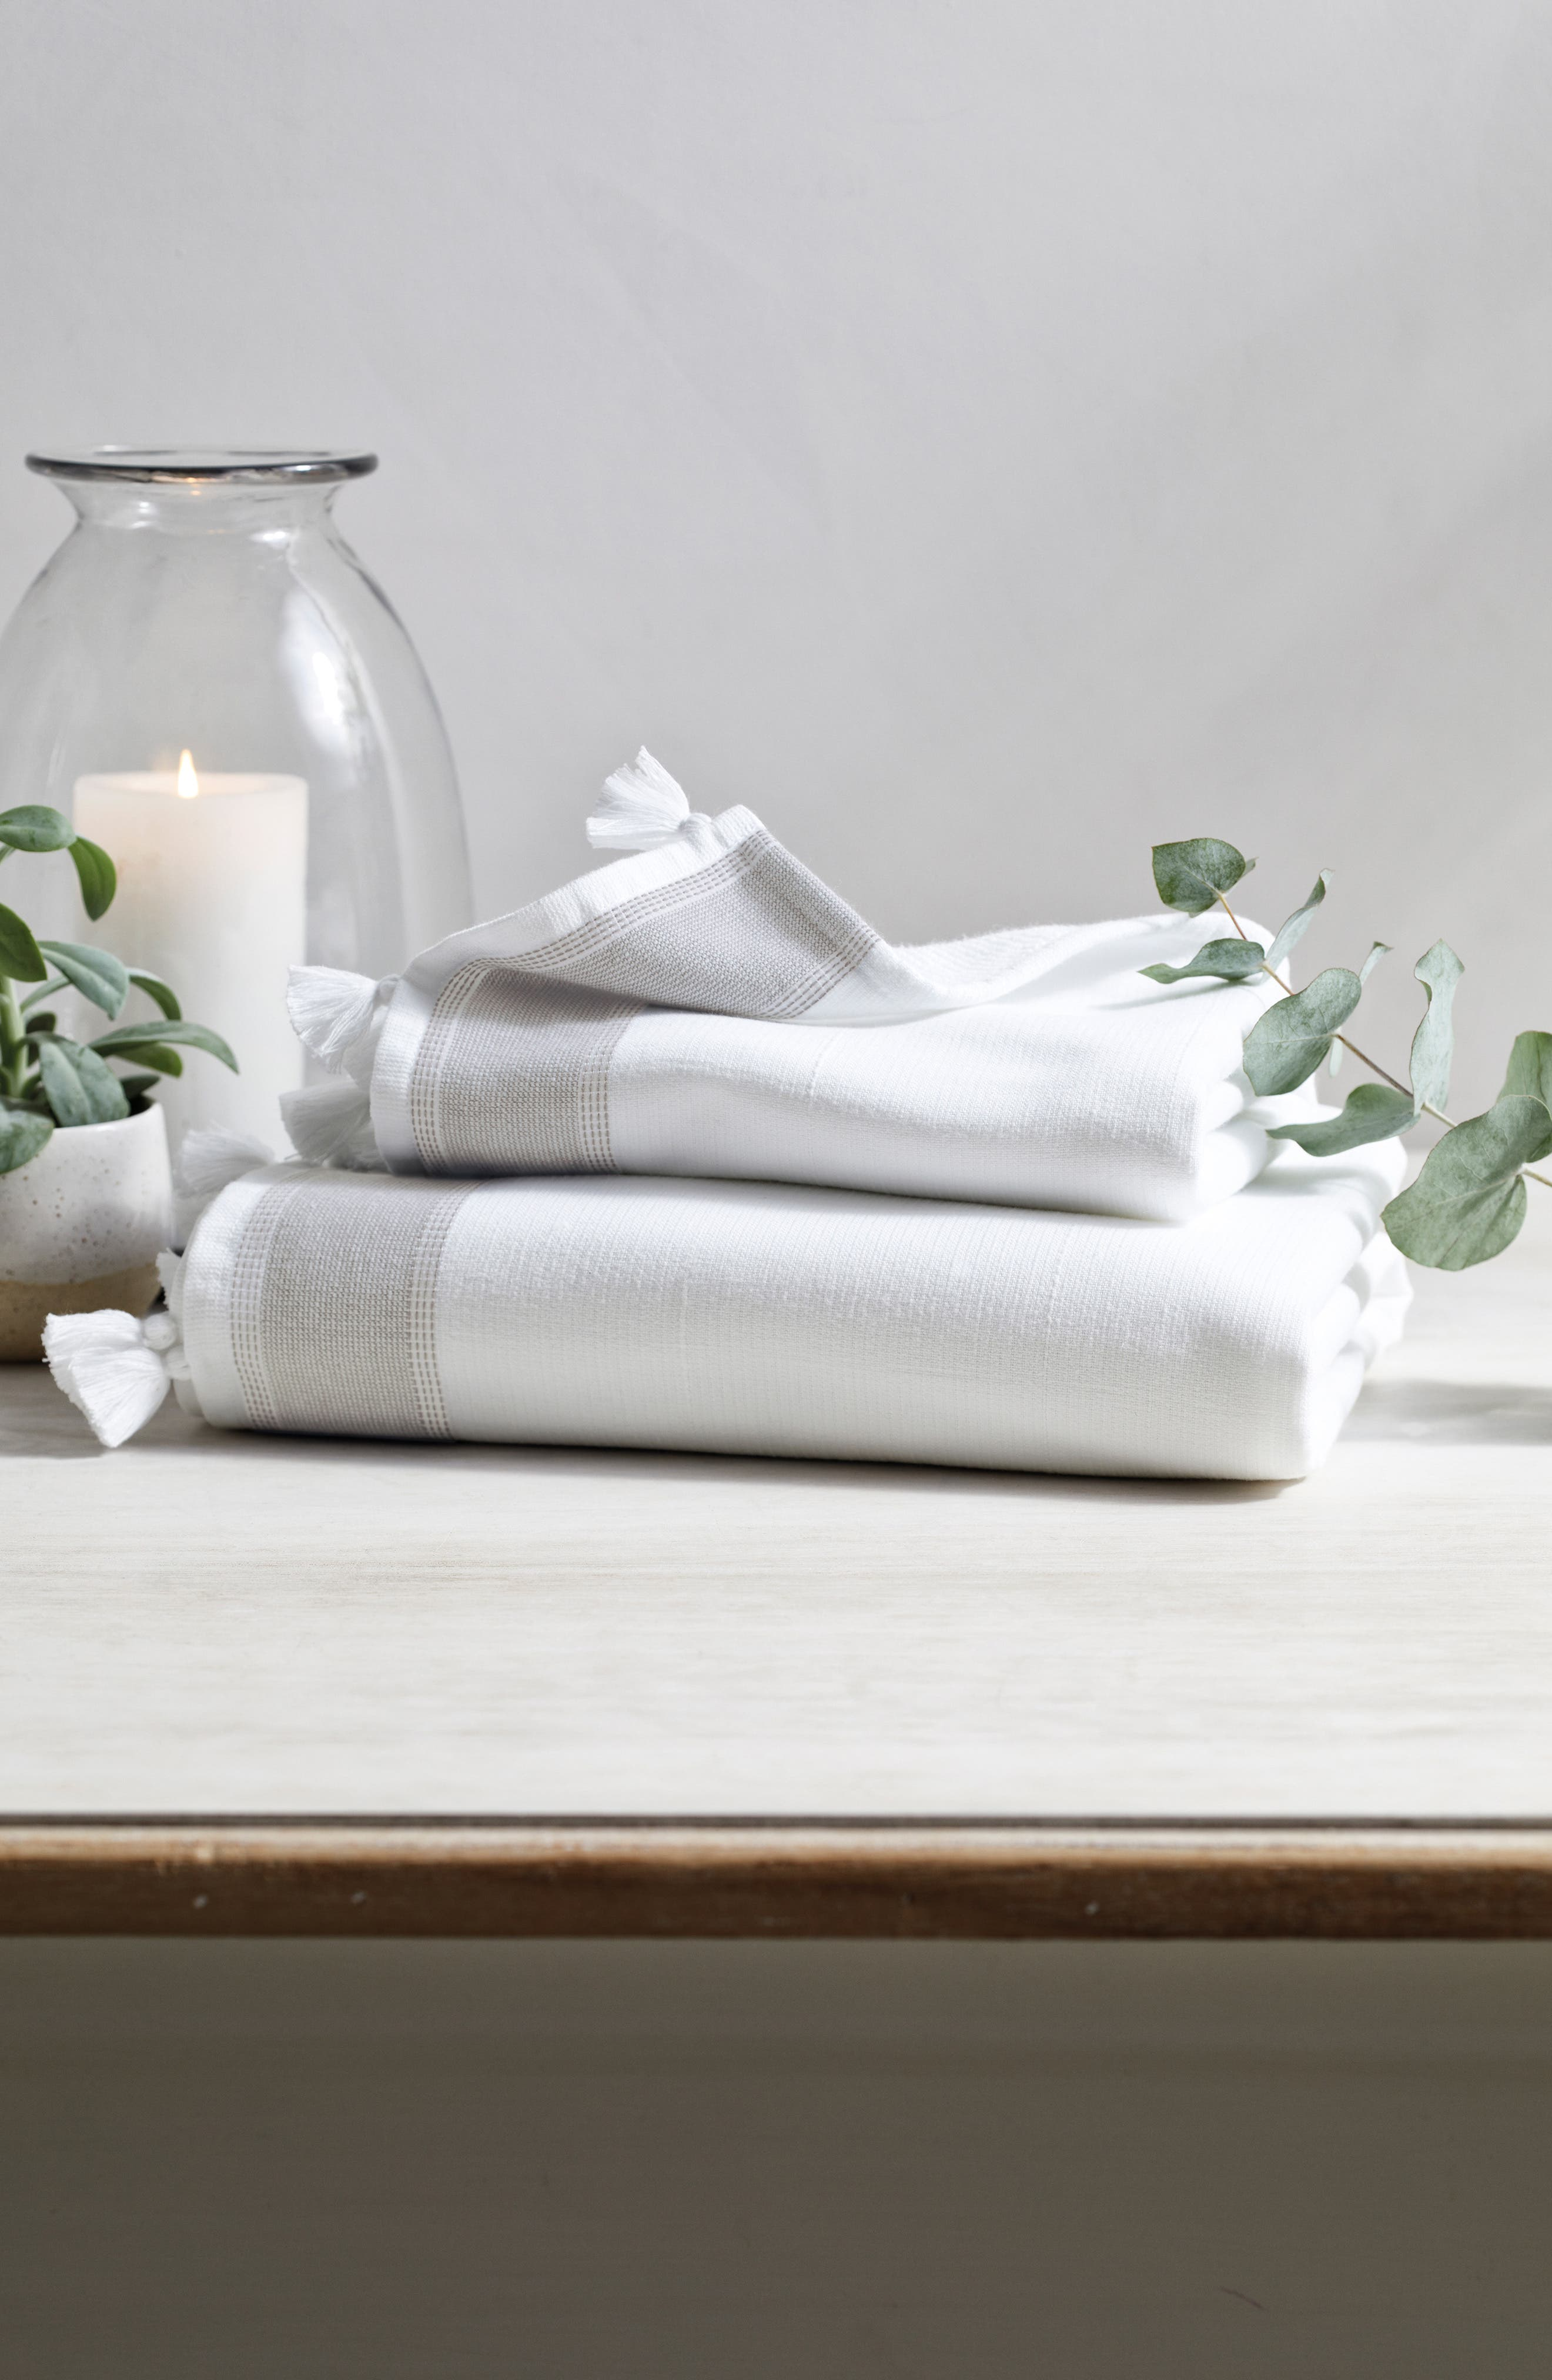 THE WHITE COMPANY St. Ives Hammam Hand Towel, Main, color, 100